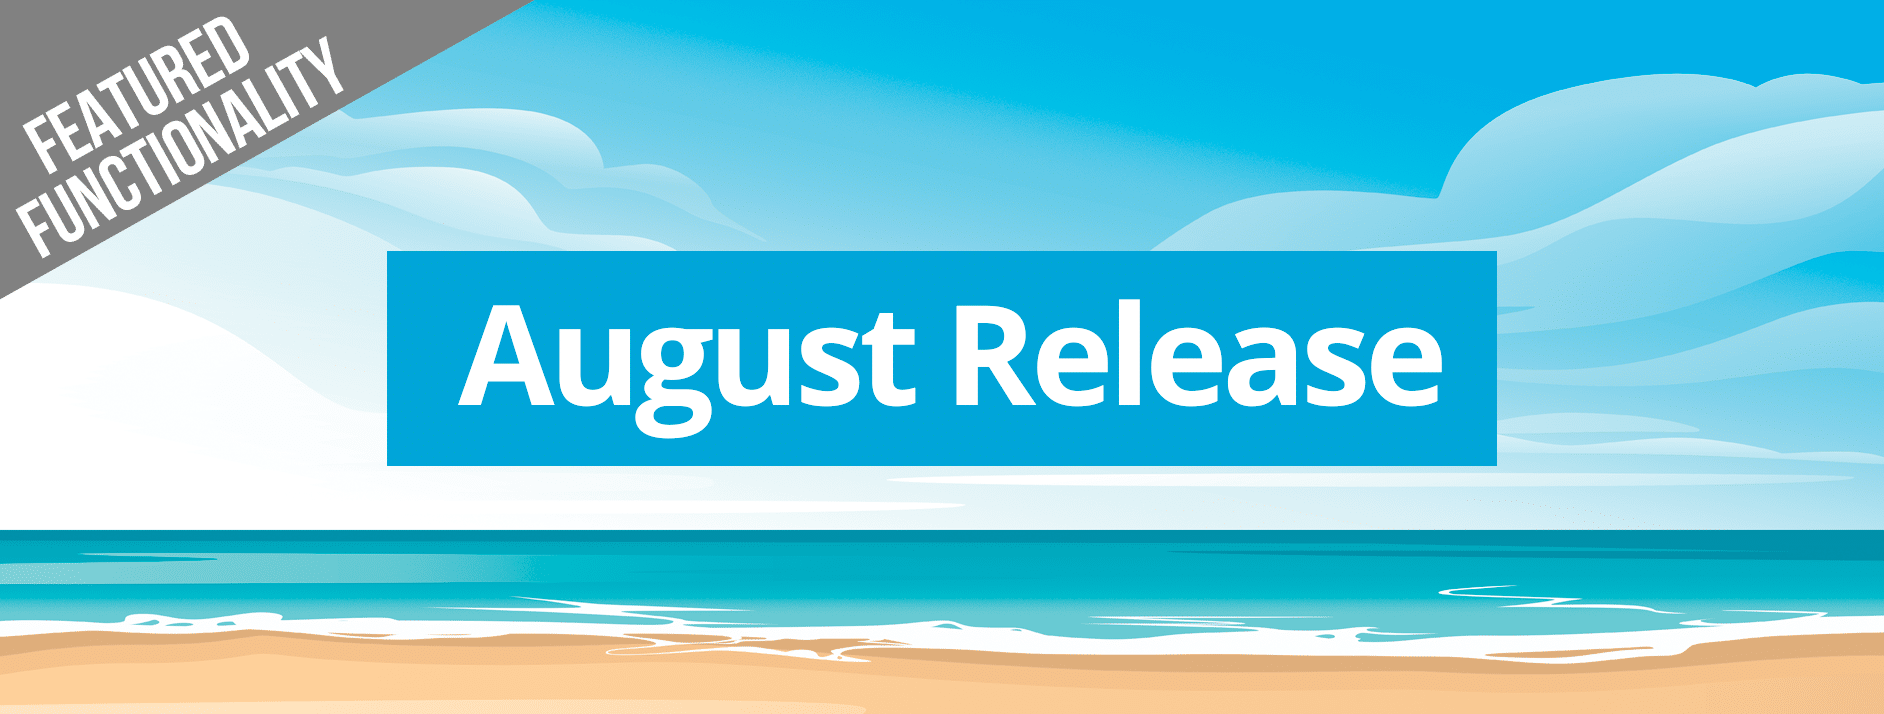 8.0 release   August 2021